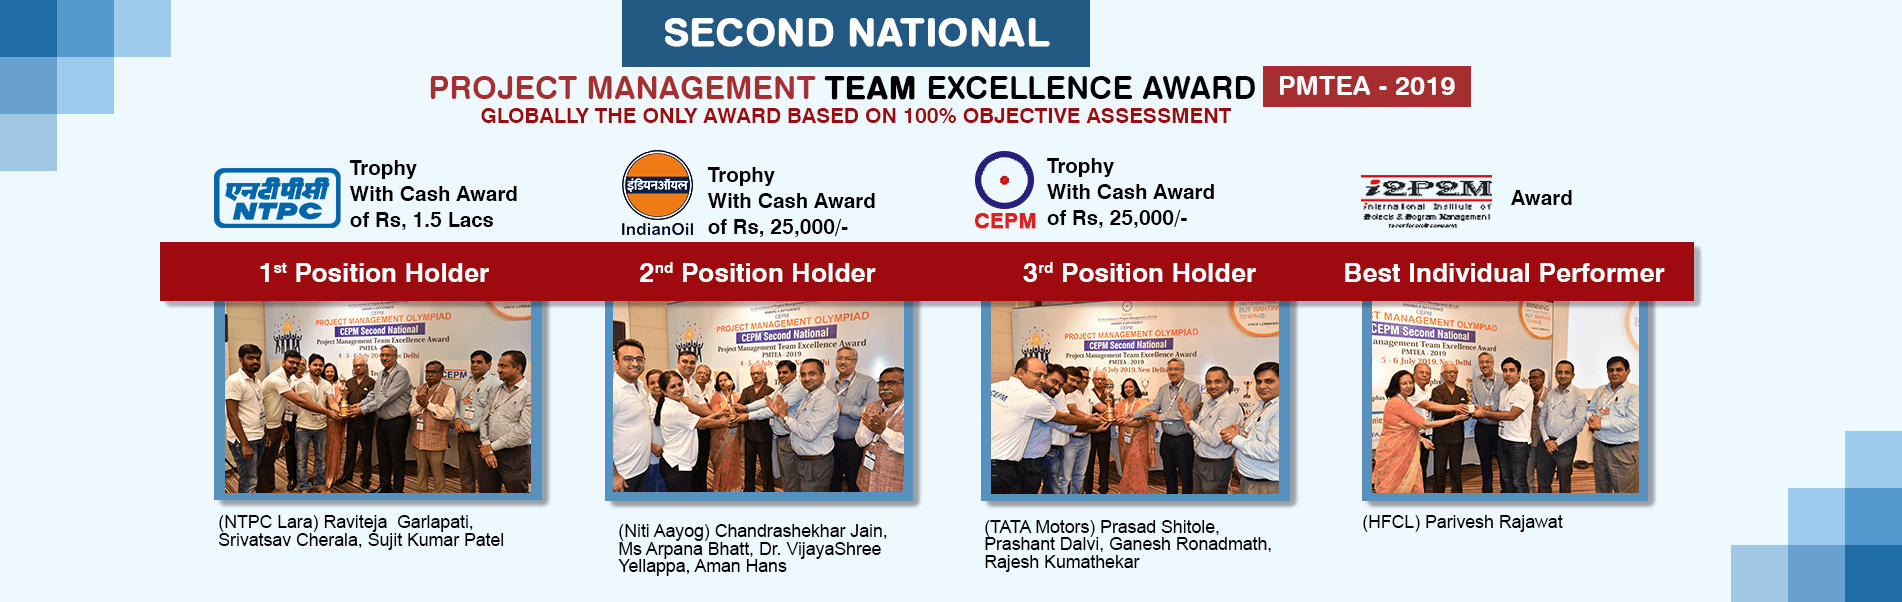 2nd National: Project Management Team Excellence Award PMTEA 2019 Winners